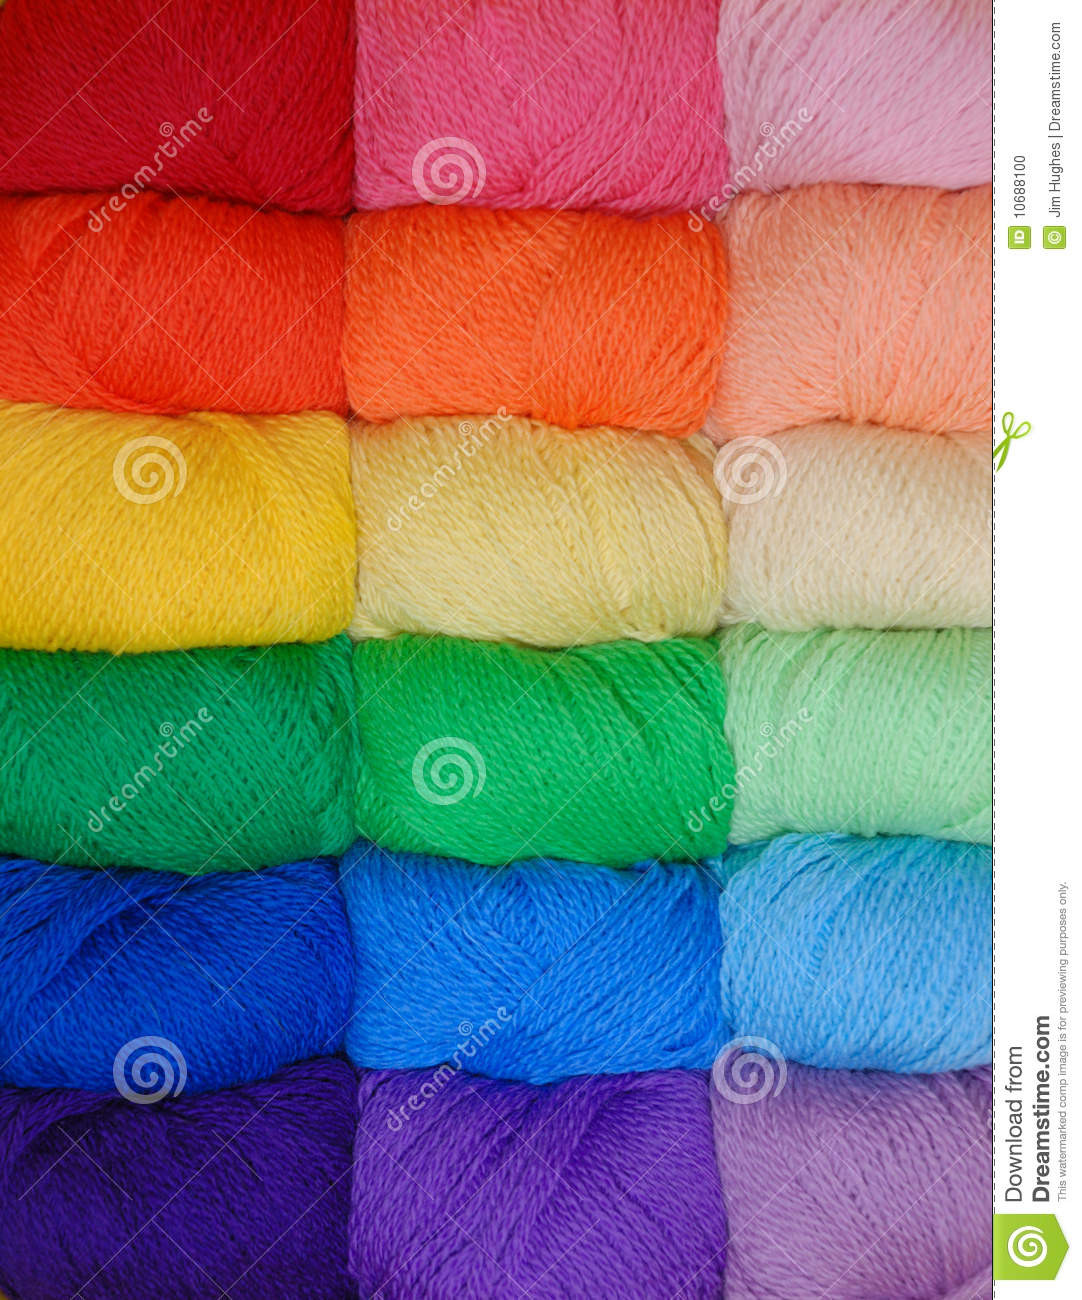 Red Heart Rainbow Yarn Luxury Rainbow Of Yarn Stock Photo Image Of Blue Green Purple Of Luxury 41 Models Red Heart Rainbow Yarn